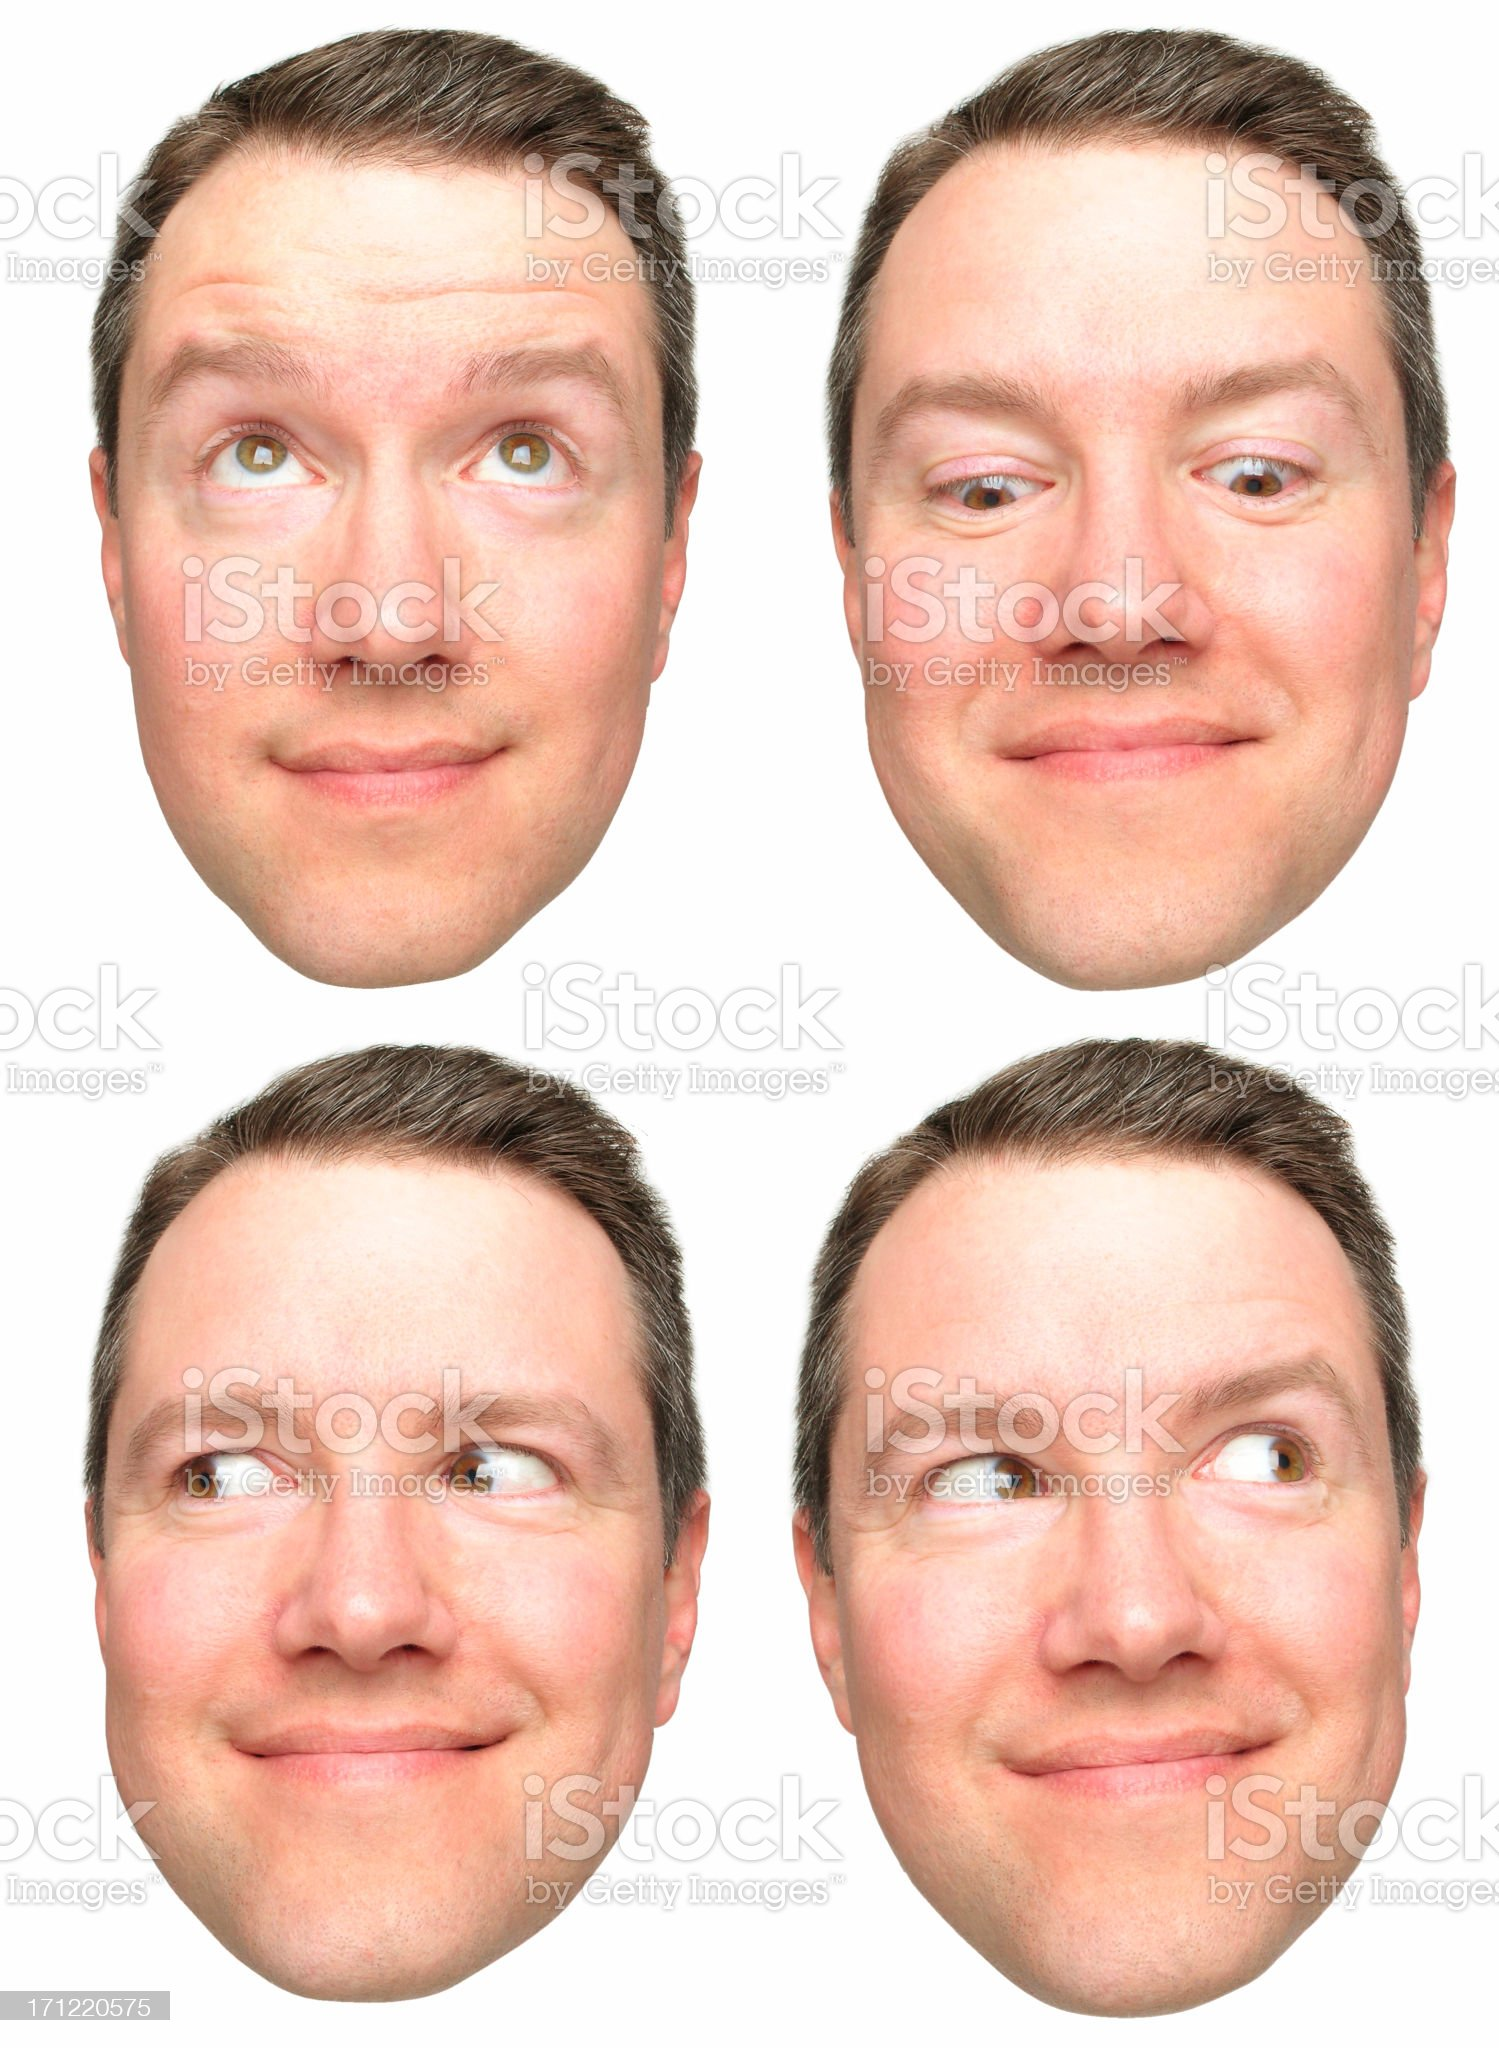 Four directions - up, down, left, right royalty-free stock photo